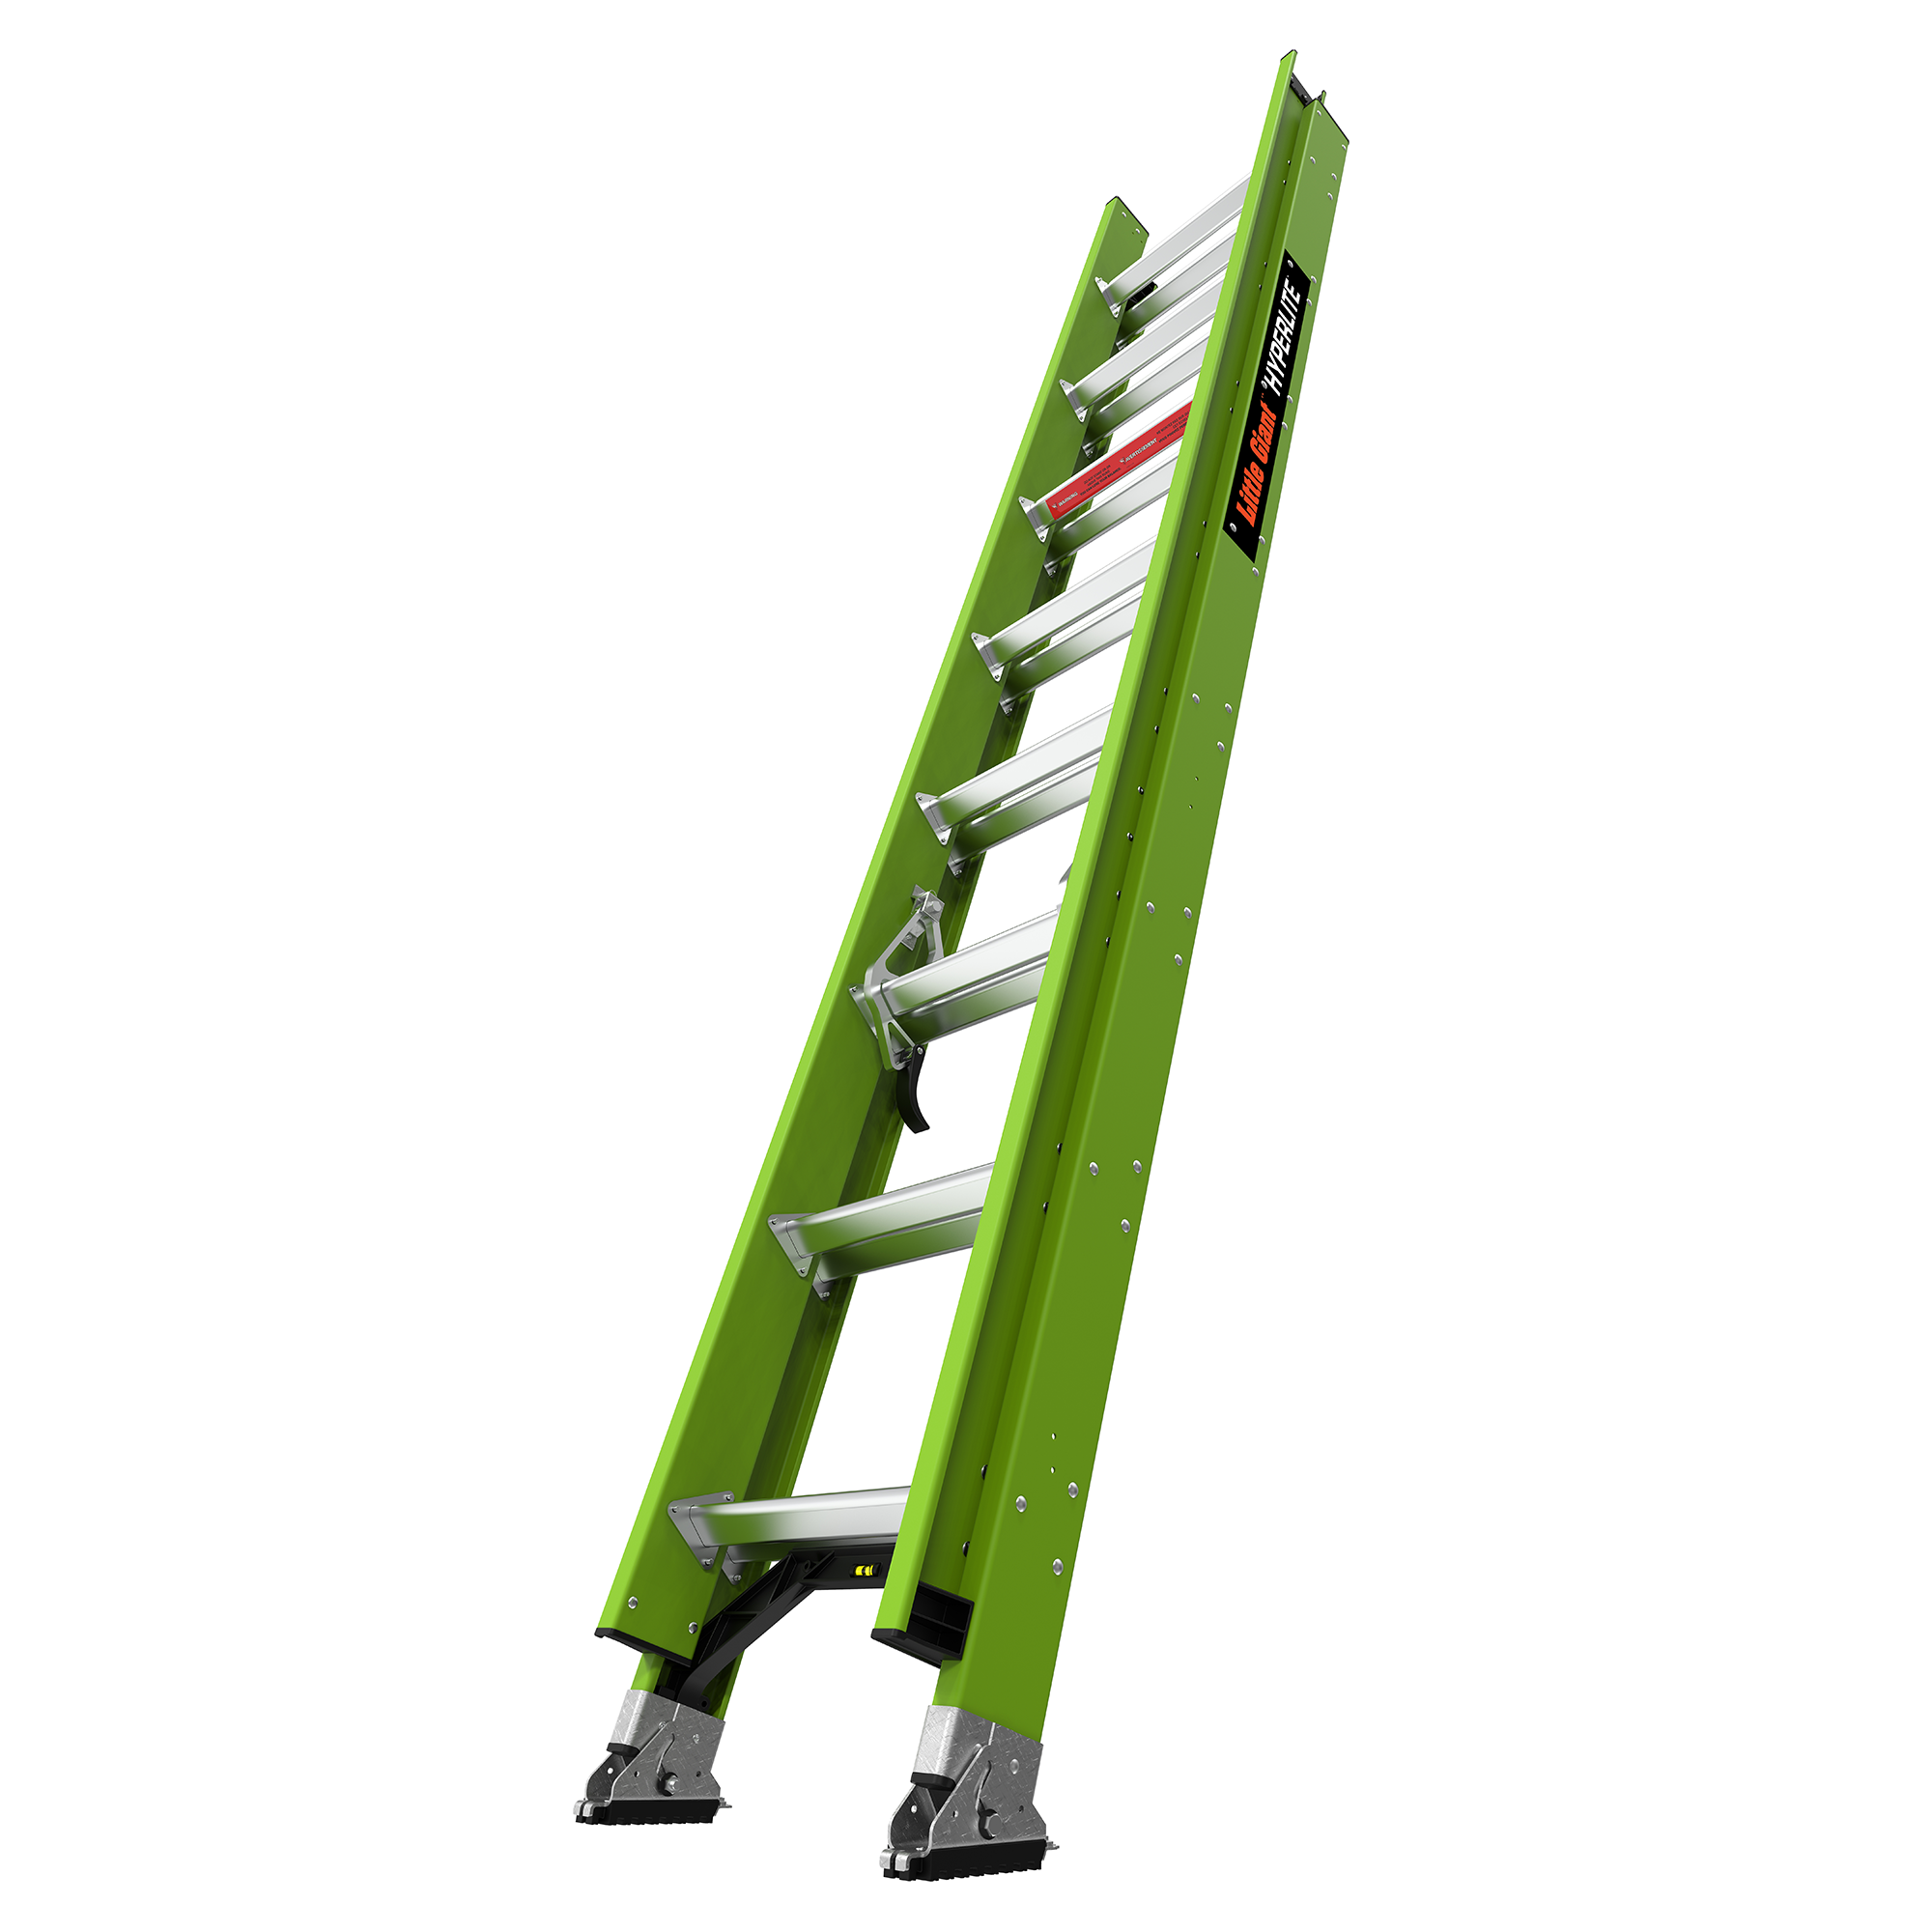 16 Ft. HyperLite Fiberglass Extension Ladder - Type IA